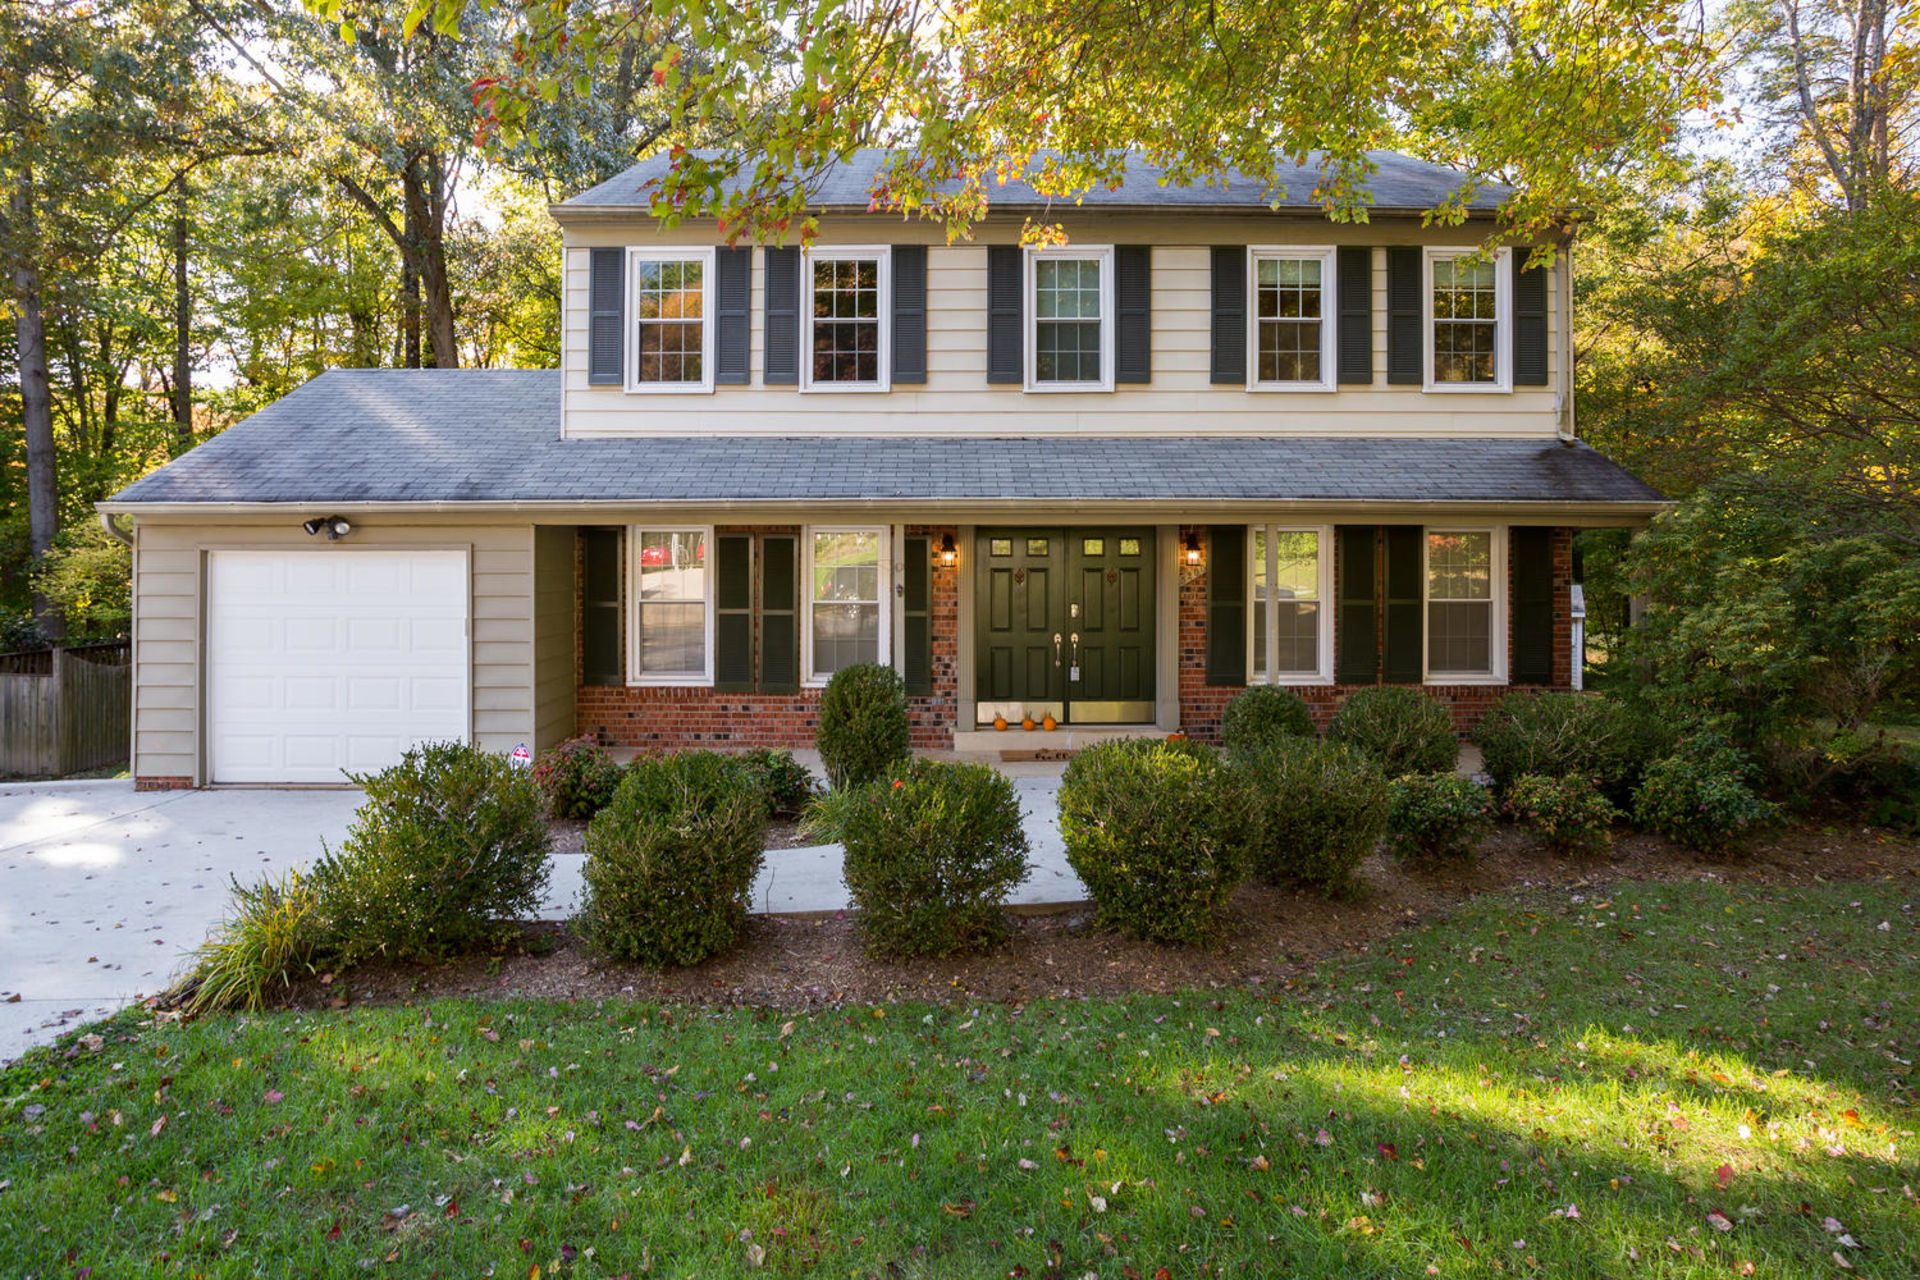 New Listing in Burke, VA, Open This Weekend!